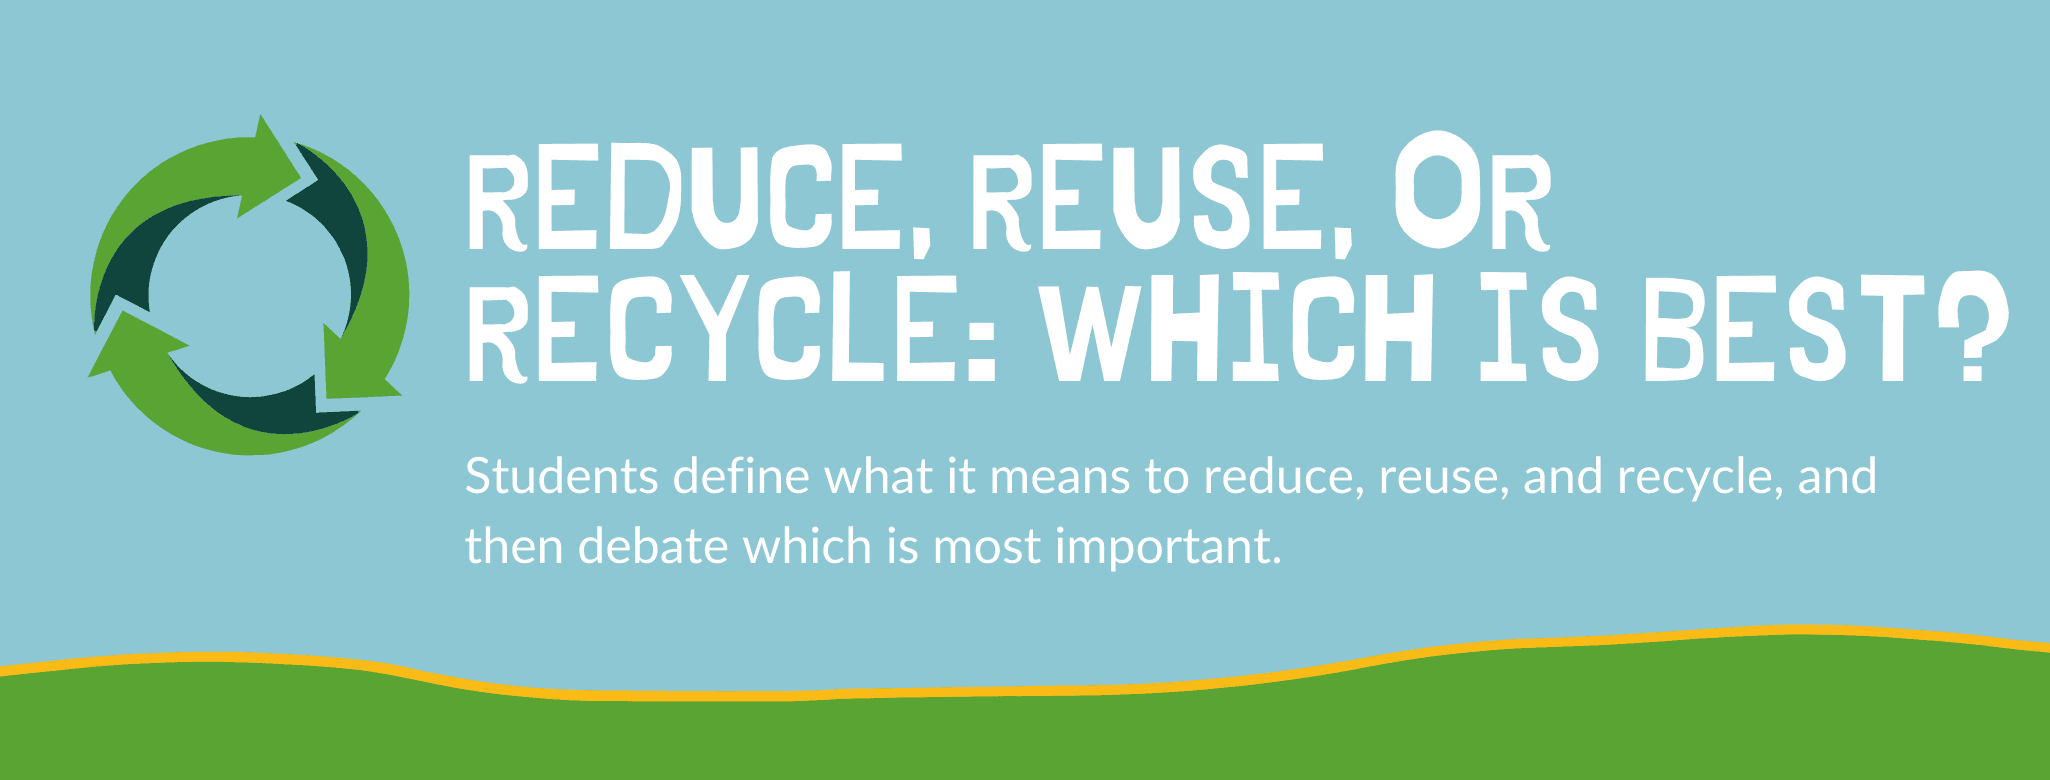 Reduce, Reuse, or Recycle: Which is Best?